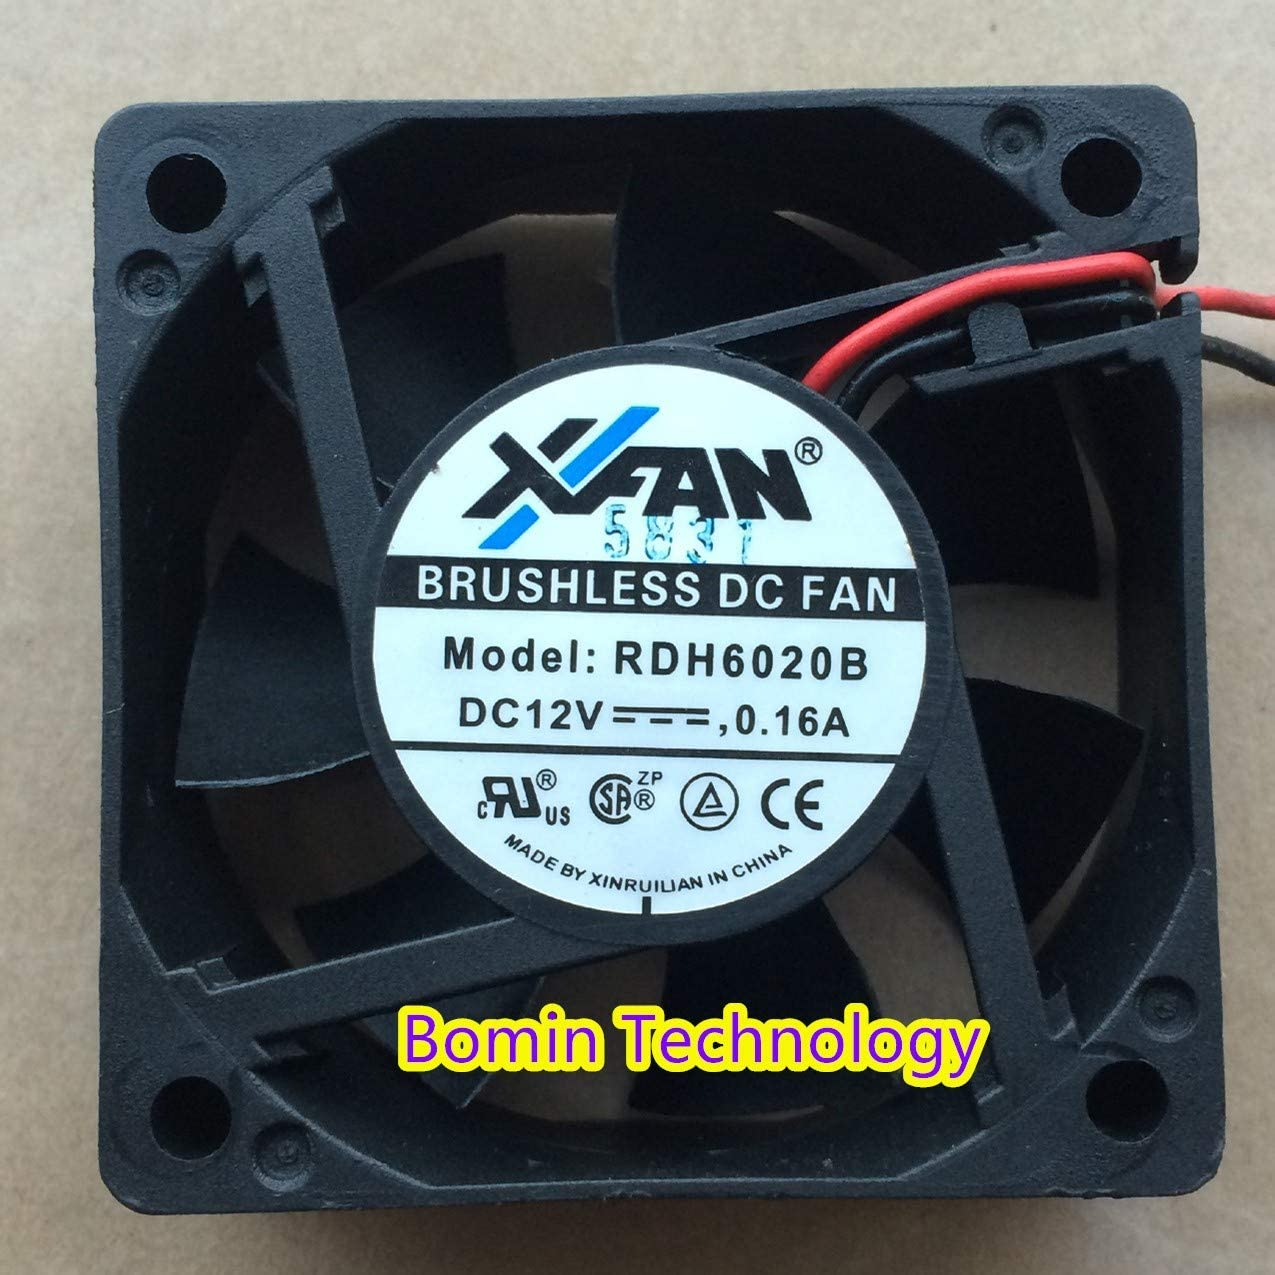 Bomin Technology for XFAN RDH6020B 12V 0.16A 2 Wire 6CM high Wind Dual Ball Cooling Fan